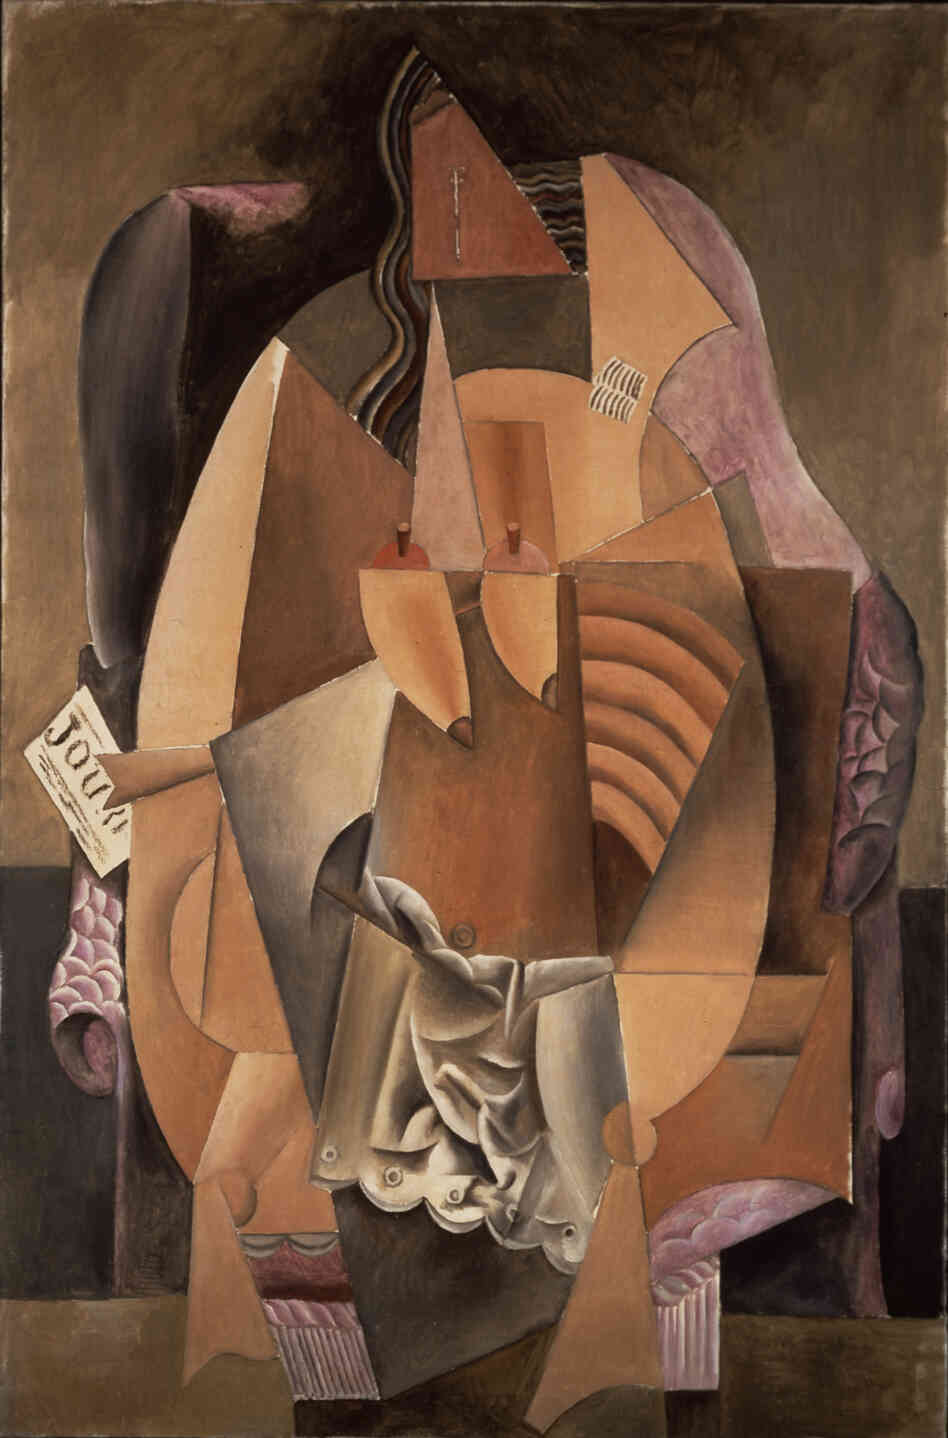 Pablo Picasso's Femme assise dans un fauteuil (Eva) (Woman in an Armchair) 1913.Oil on canvas.